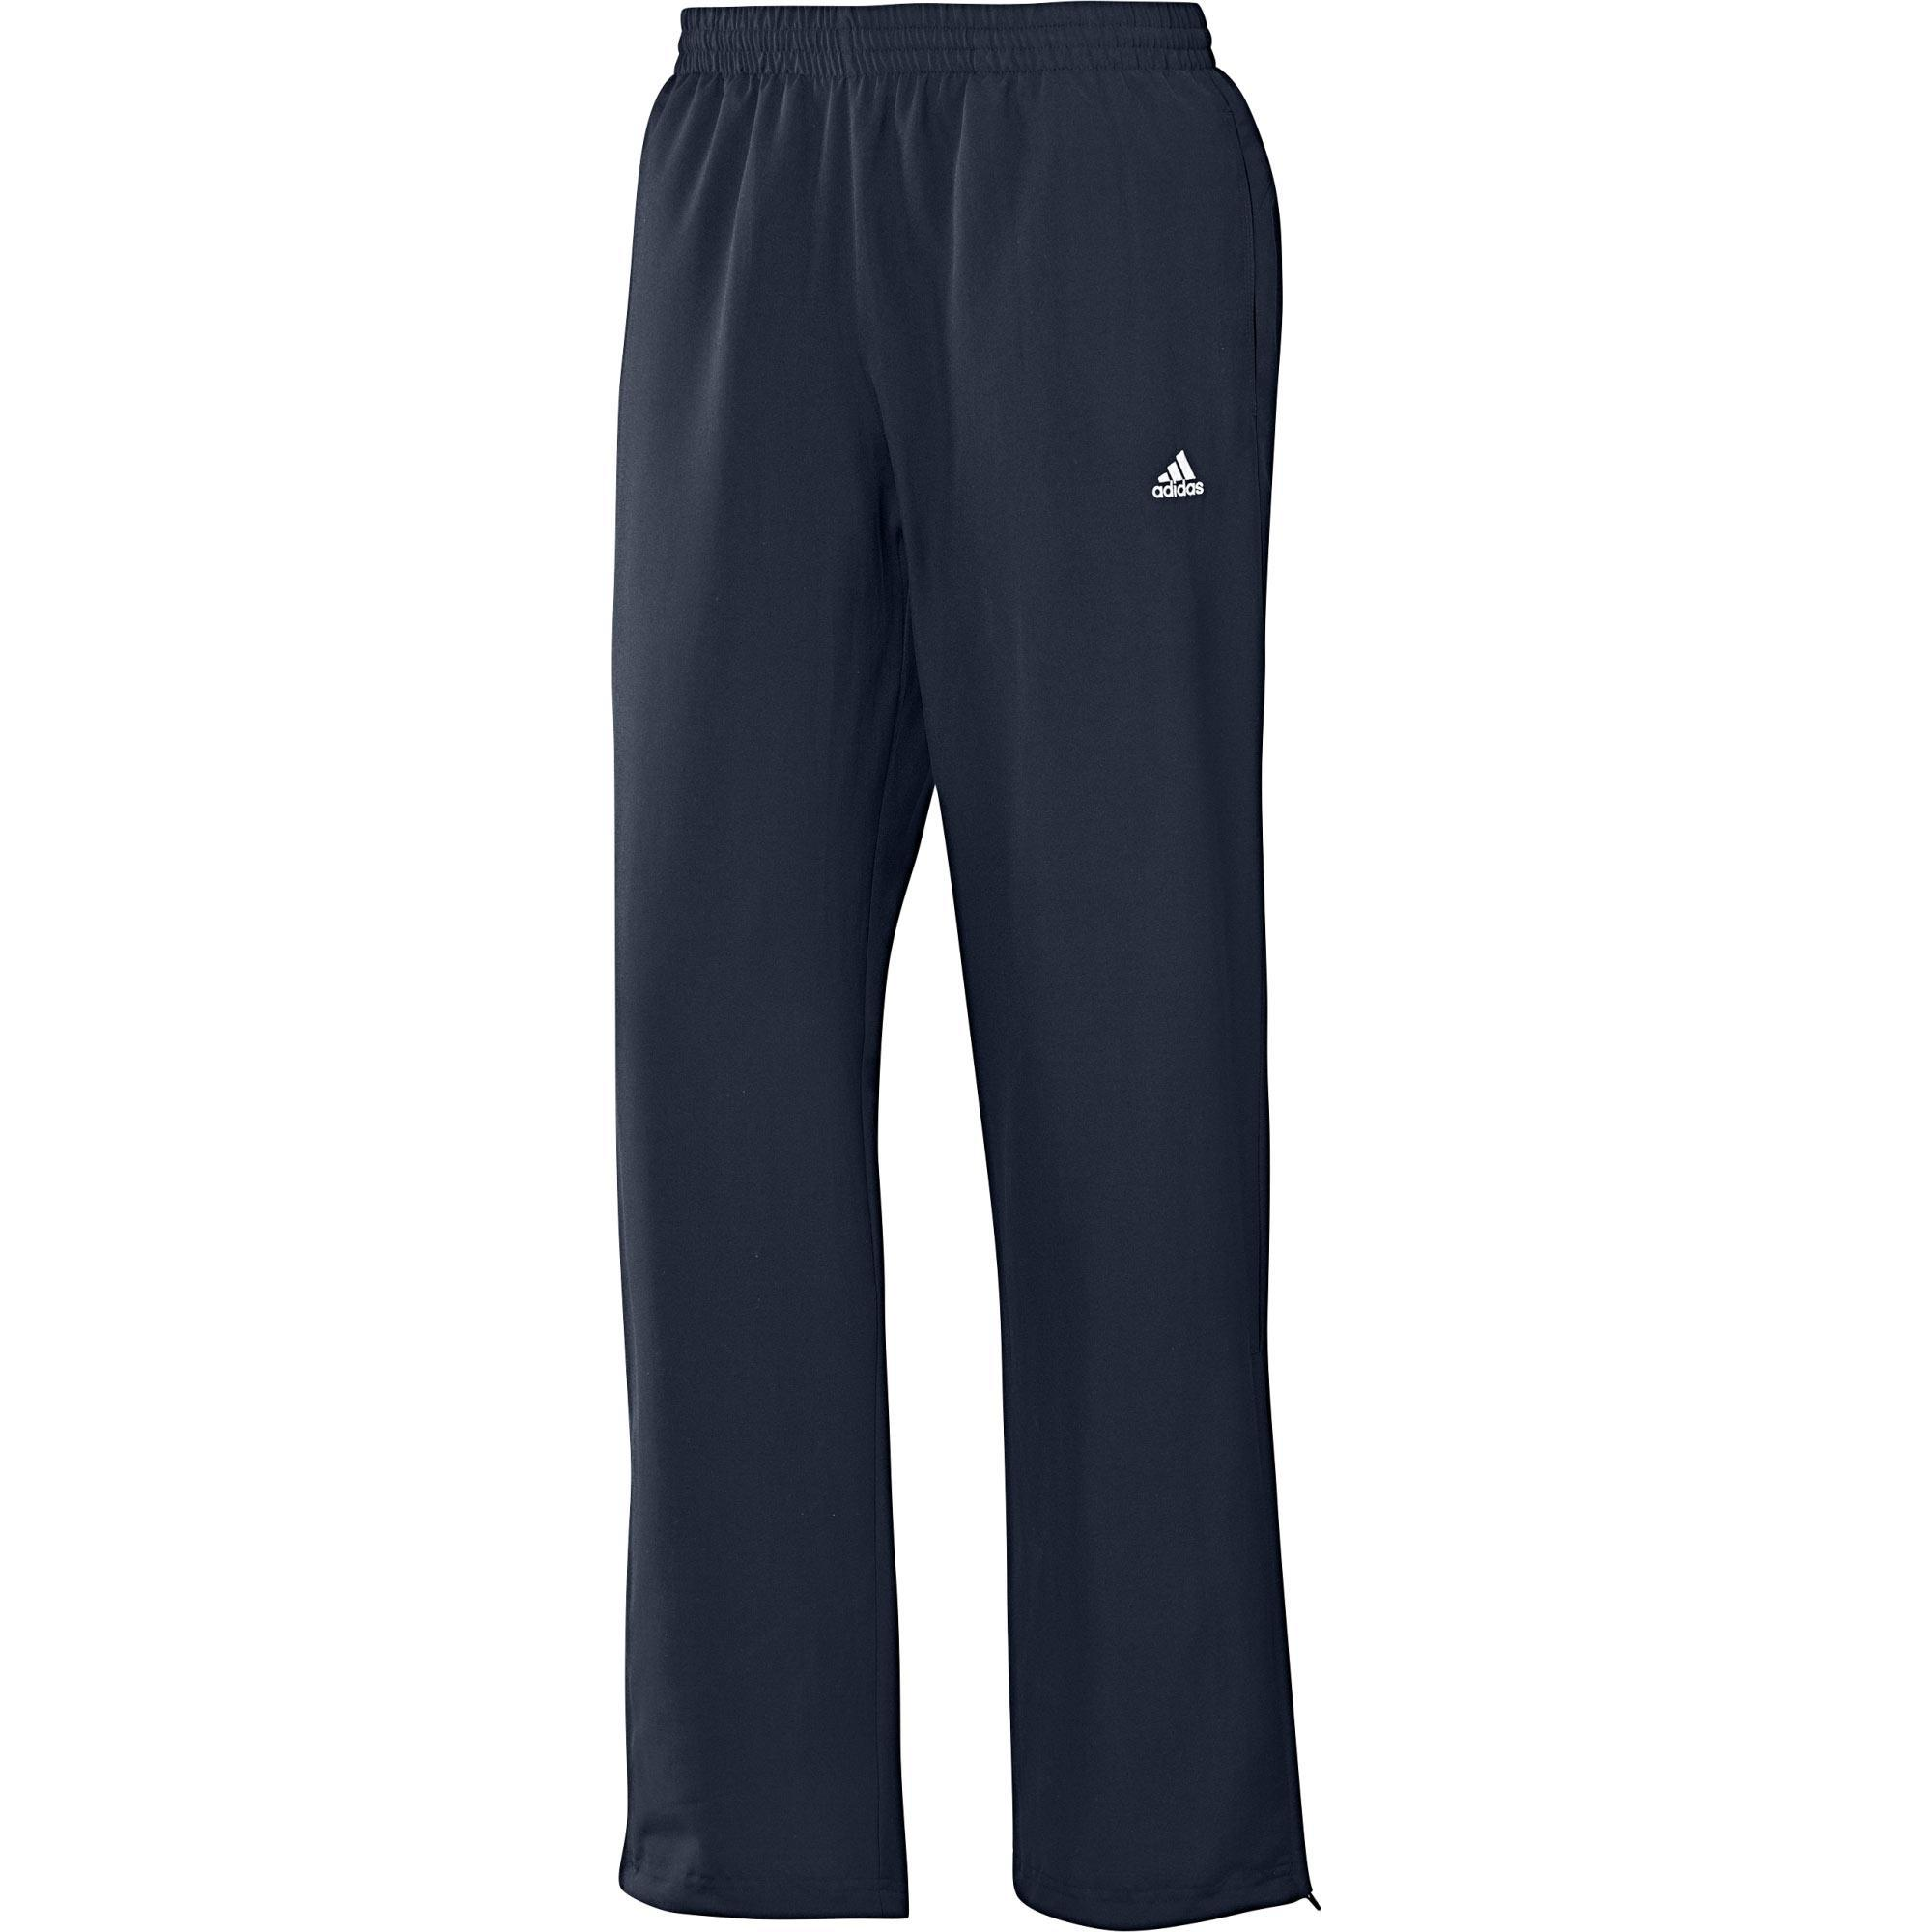 adidas Men's Essentials Stanford Open Hem Pants